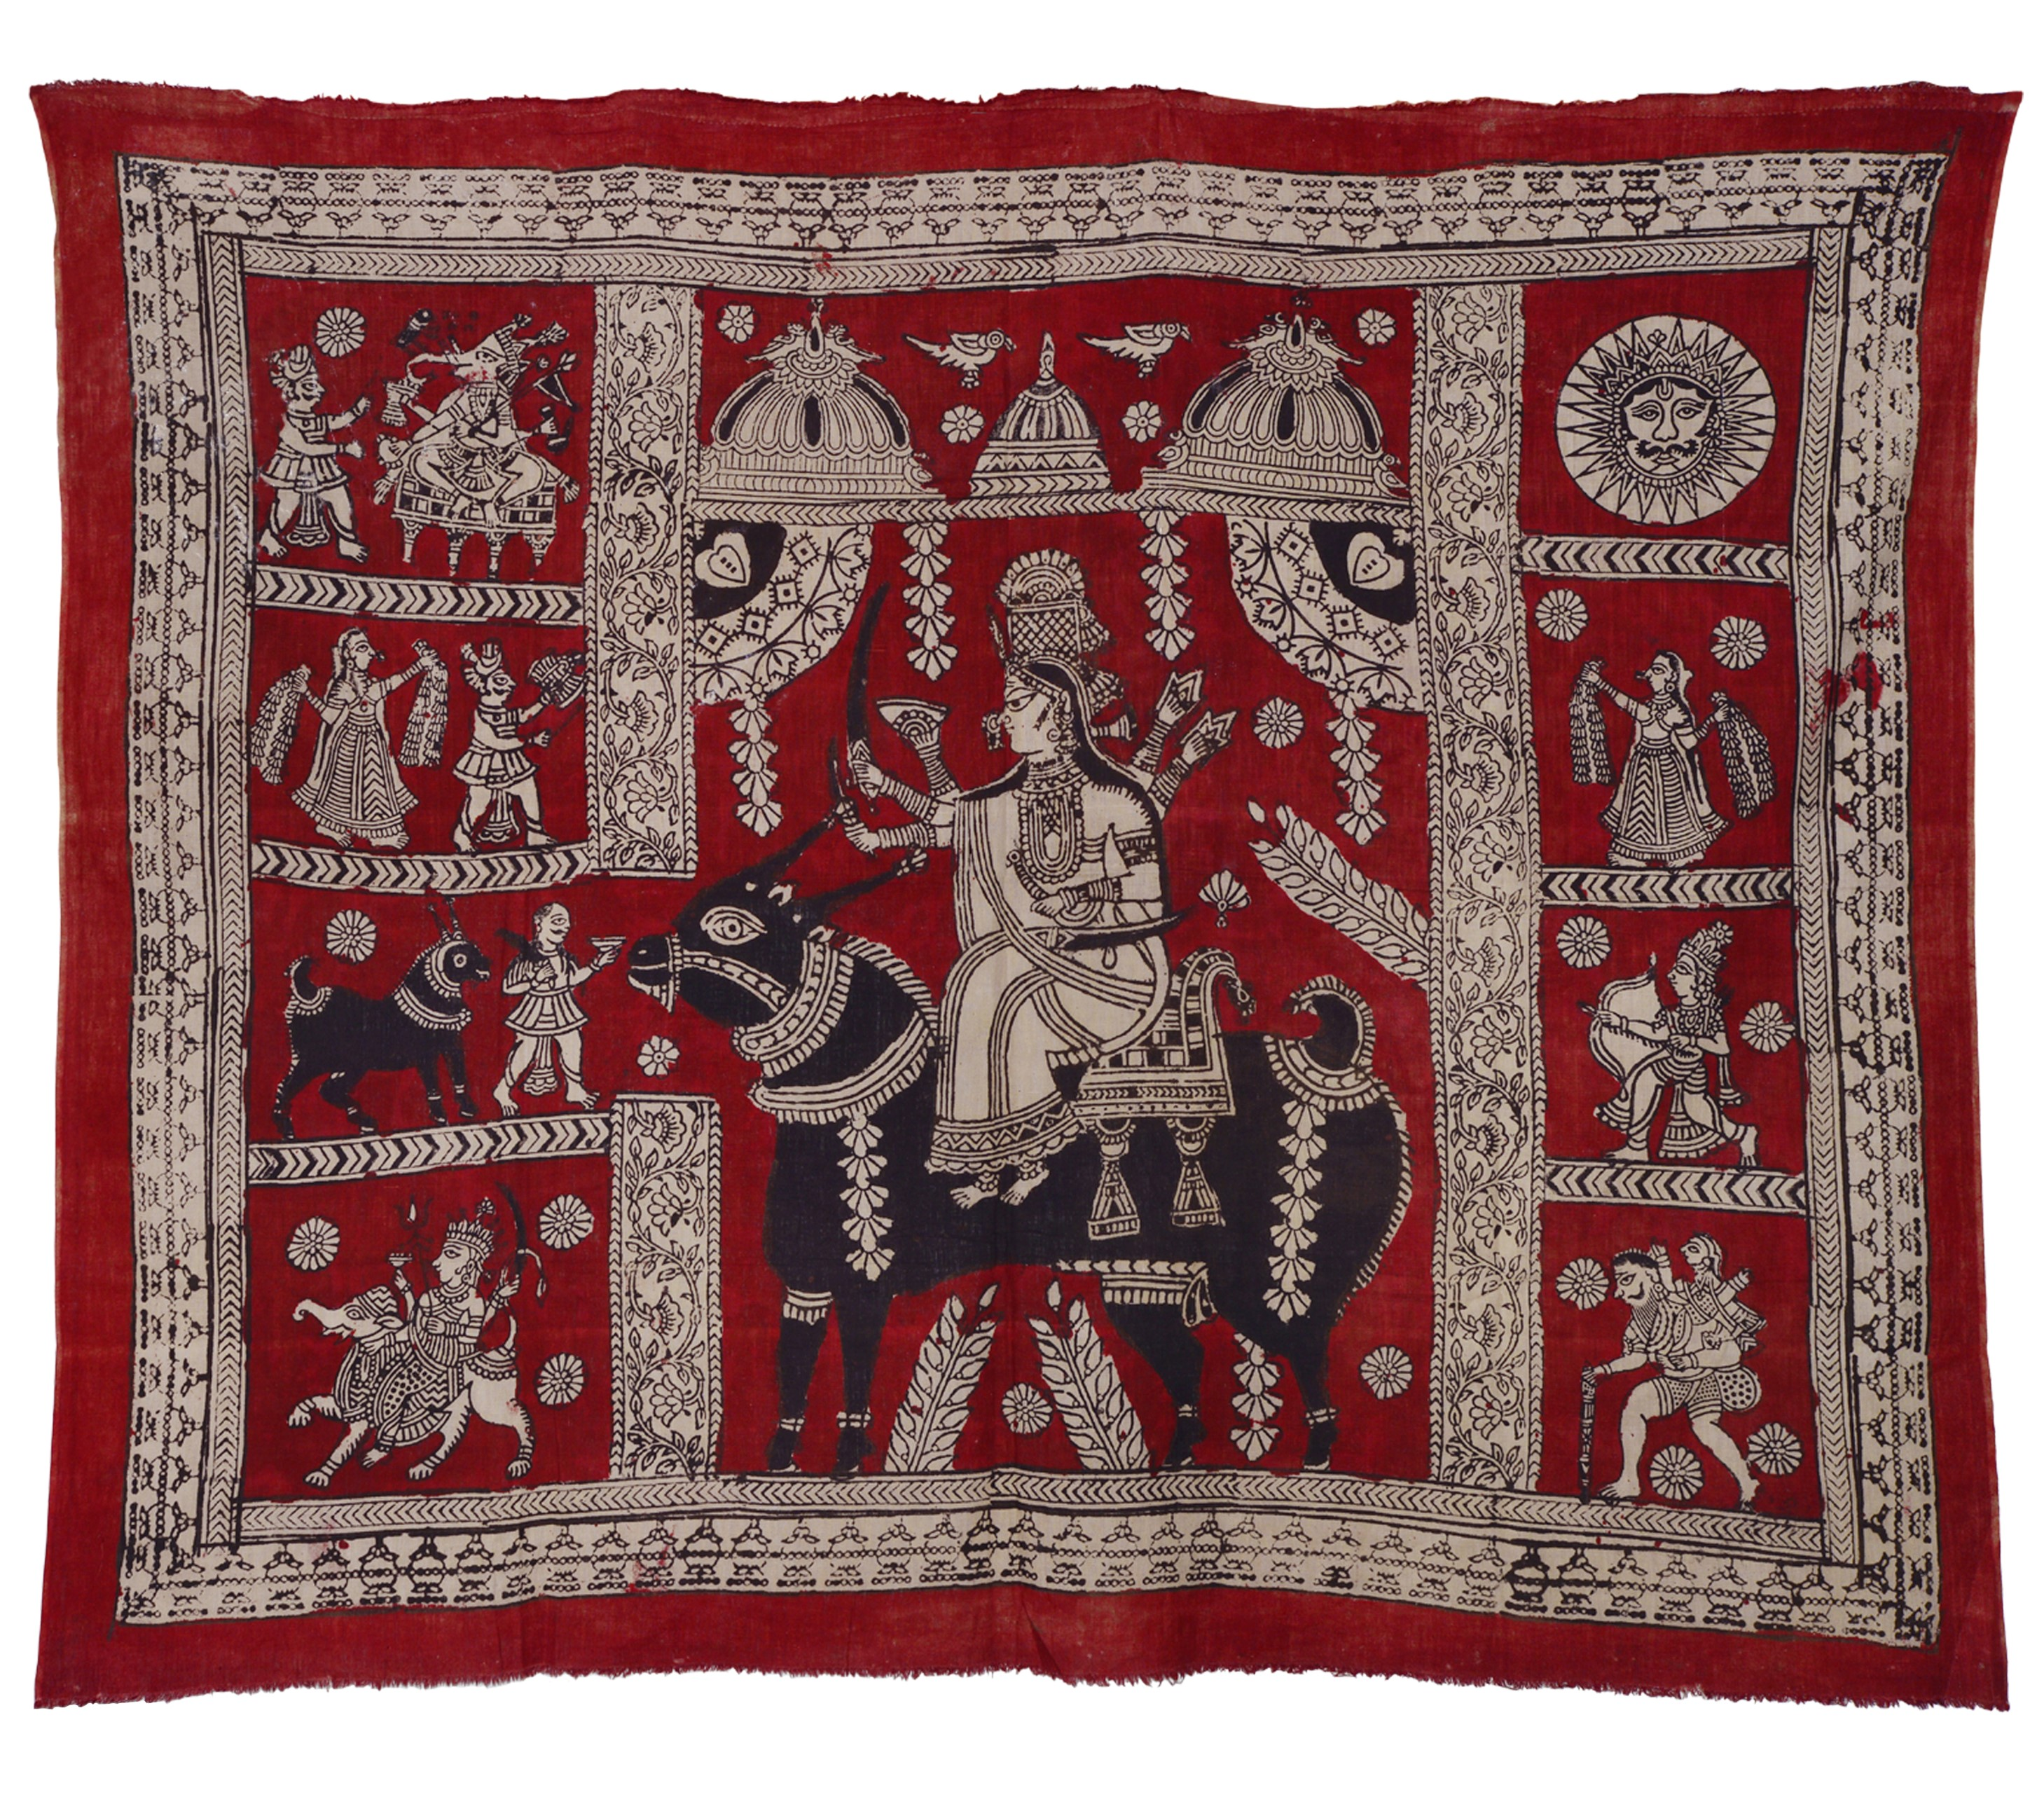 Mataji no chandarvo dedicated to Goddess Meladi, Block printed and painted on cloth, Lt. 127; Wd. 102 cm, Ahmedabad, Gujarat. Purchased by Archana Shastri in Ahmedabad in 1978. Photograph by Renu Dhiman.